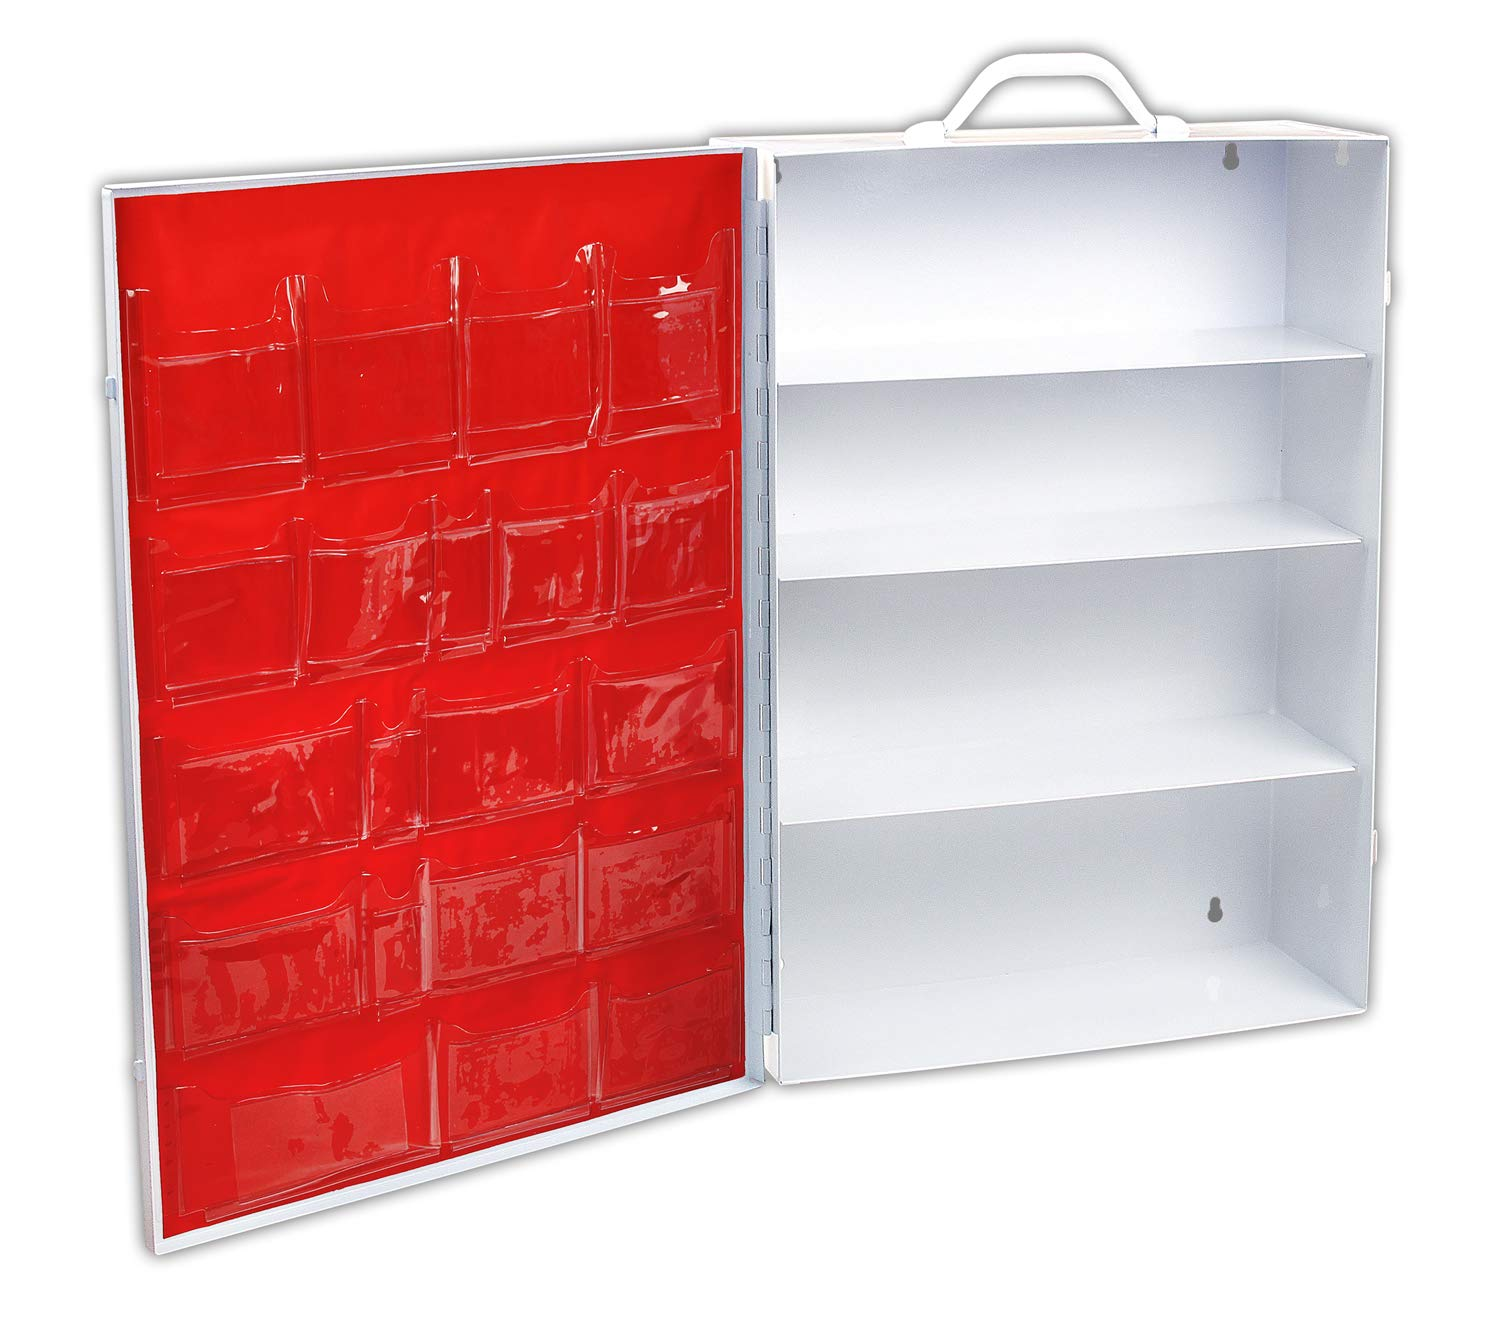 Rapid Care First Aid 62004 4 Shelf First Aid Cabinet without Product